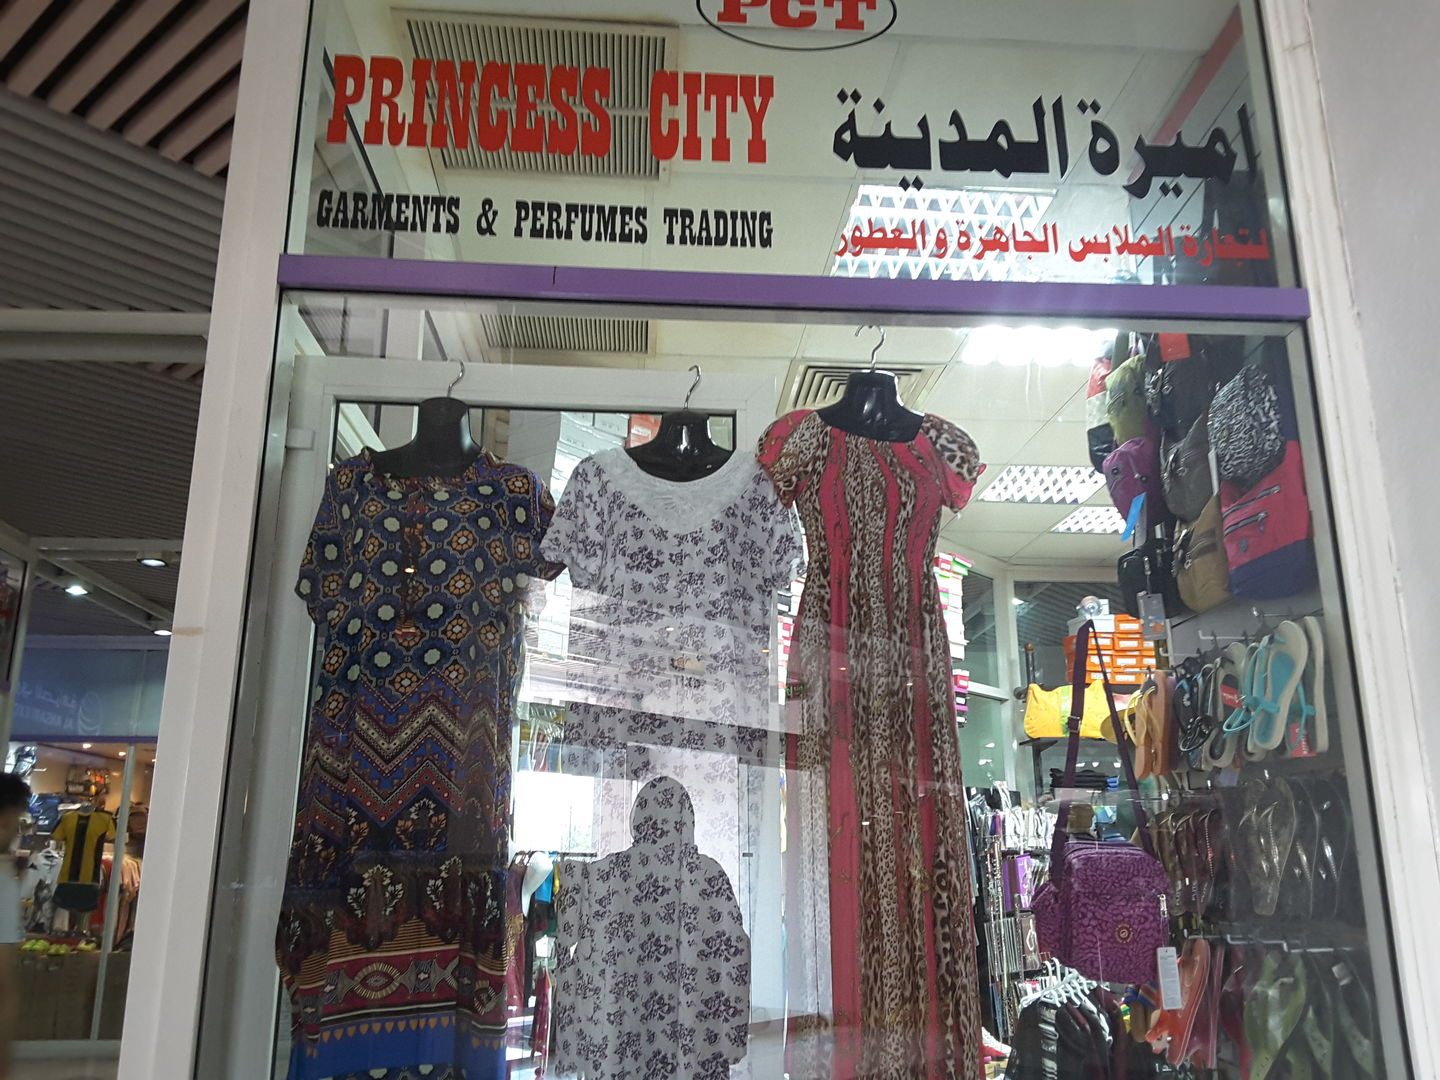 HiDubai-business-princess-city-garments-perfumes-trading-shopping-apparel-al-bada-dubai-2